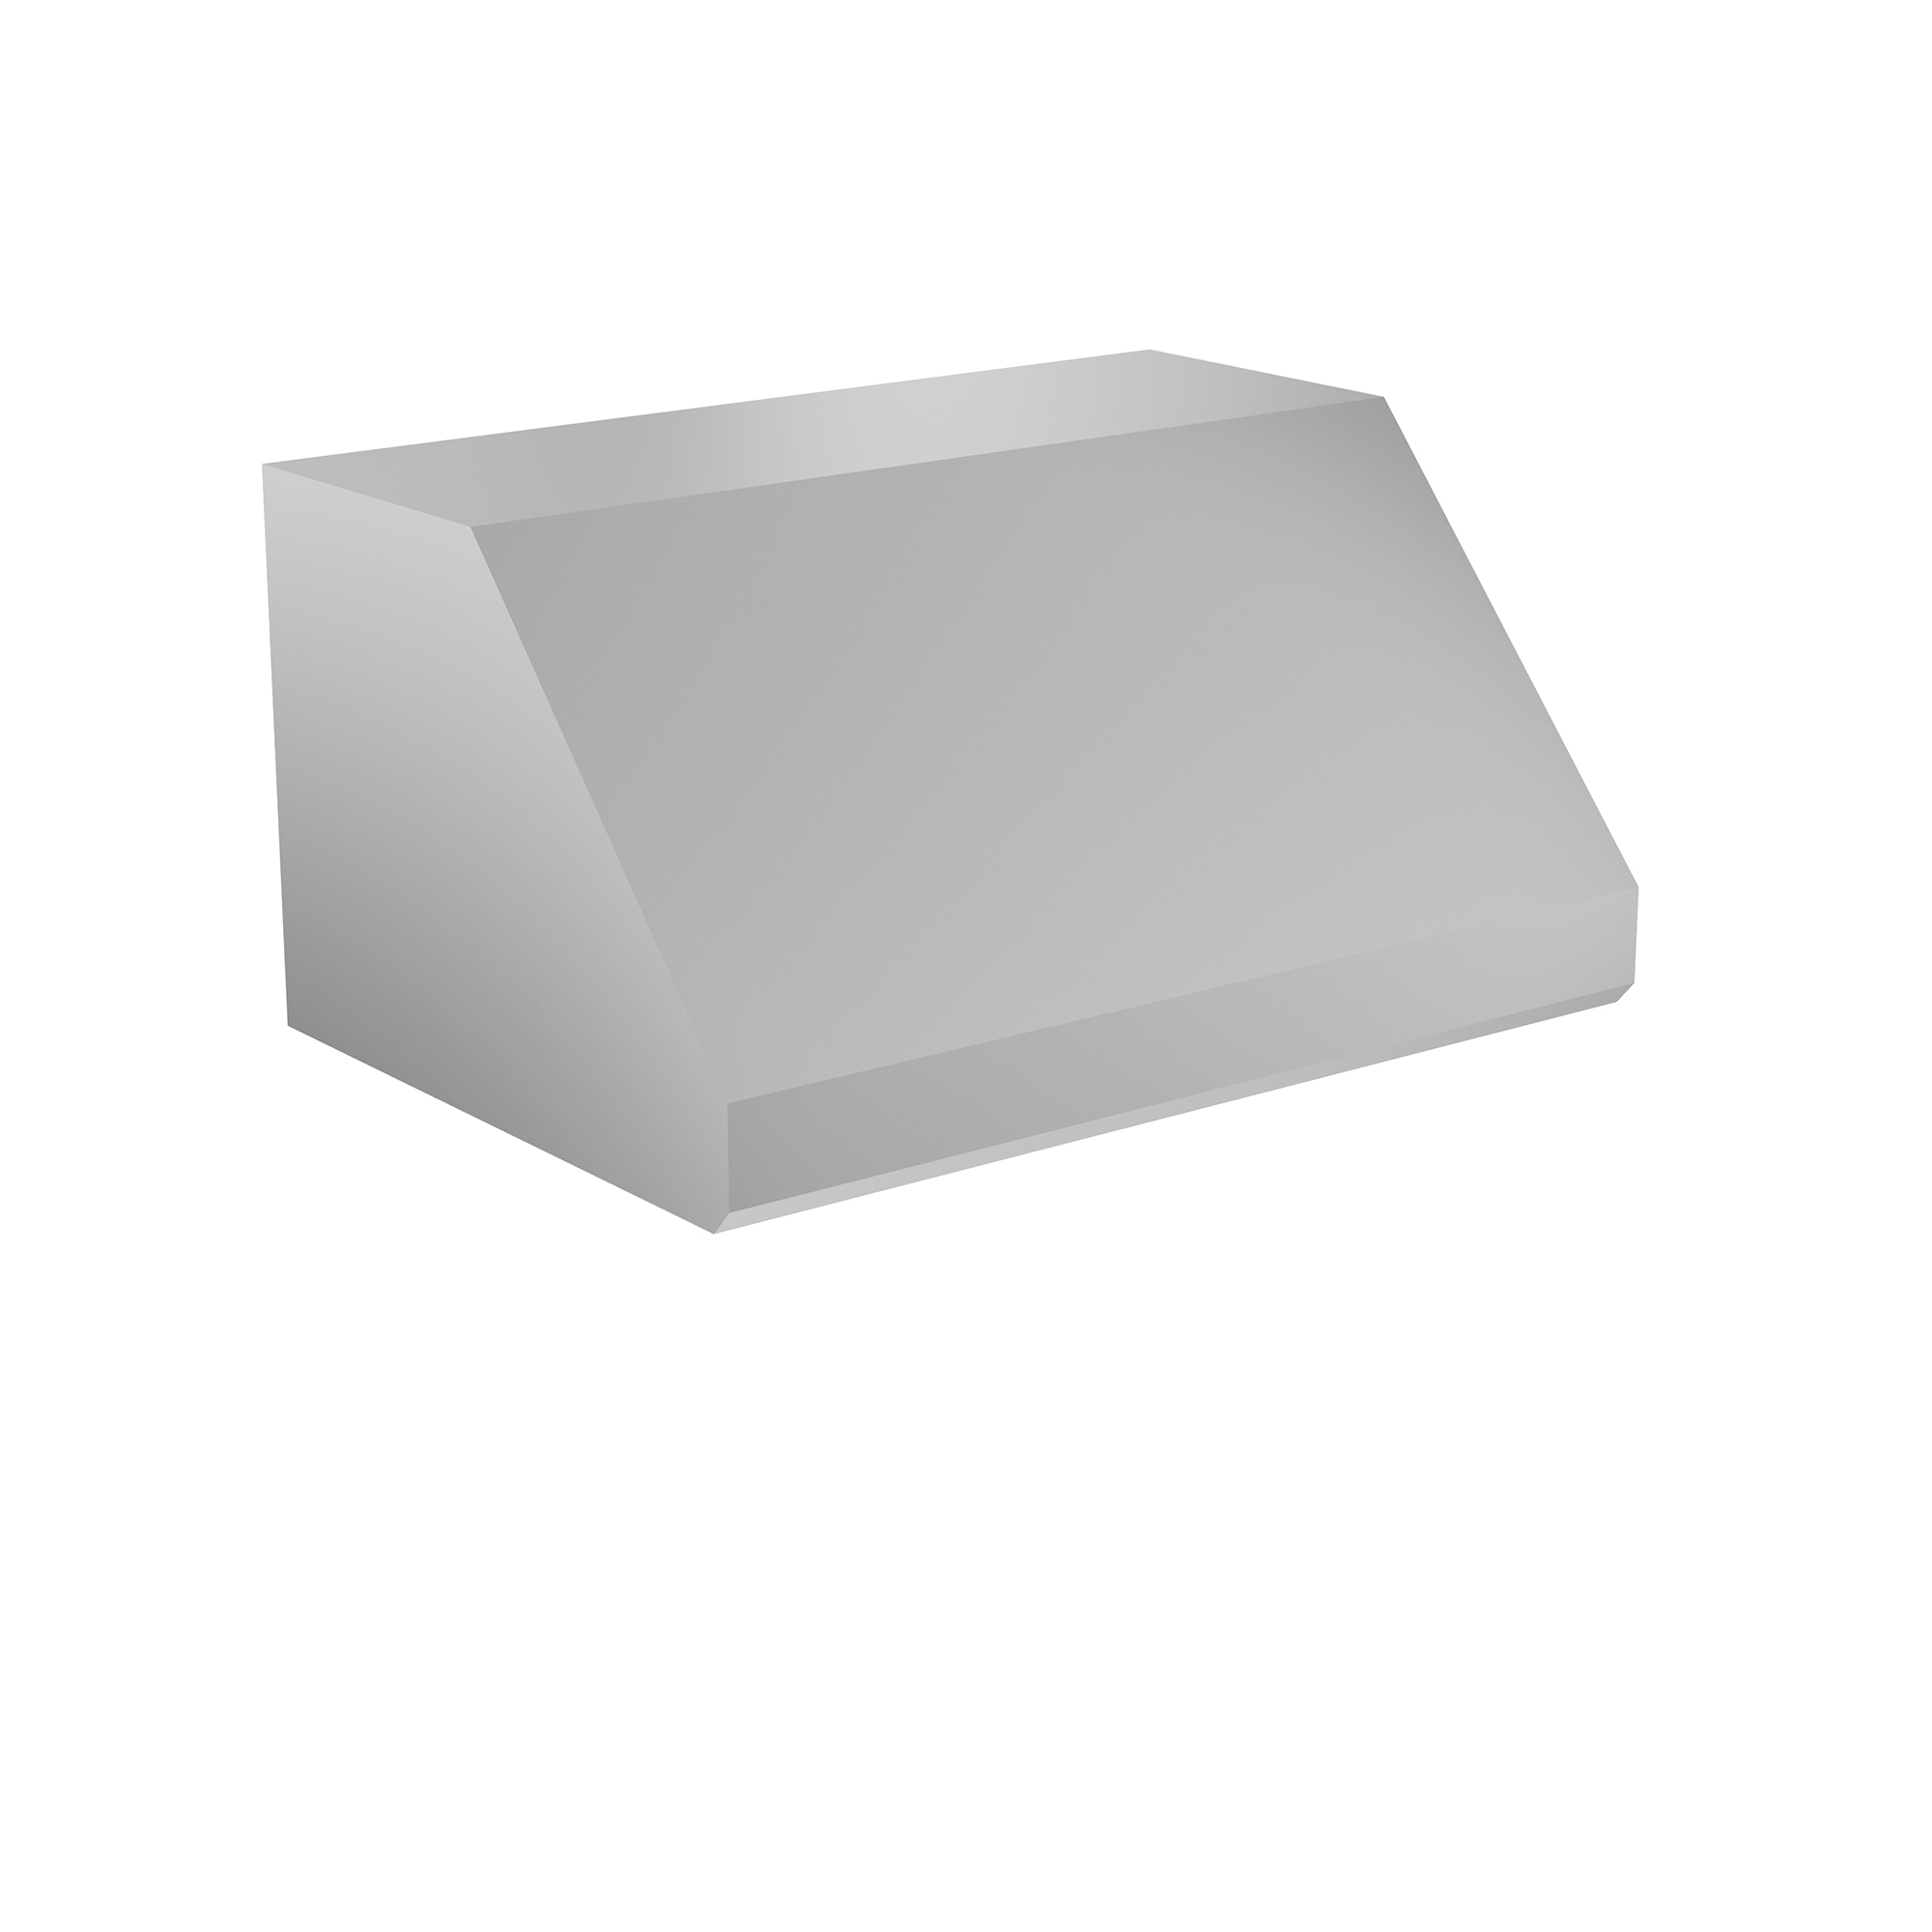 zline-stainless-steel-under-cabinet-range-hood-685-main.jpg